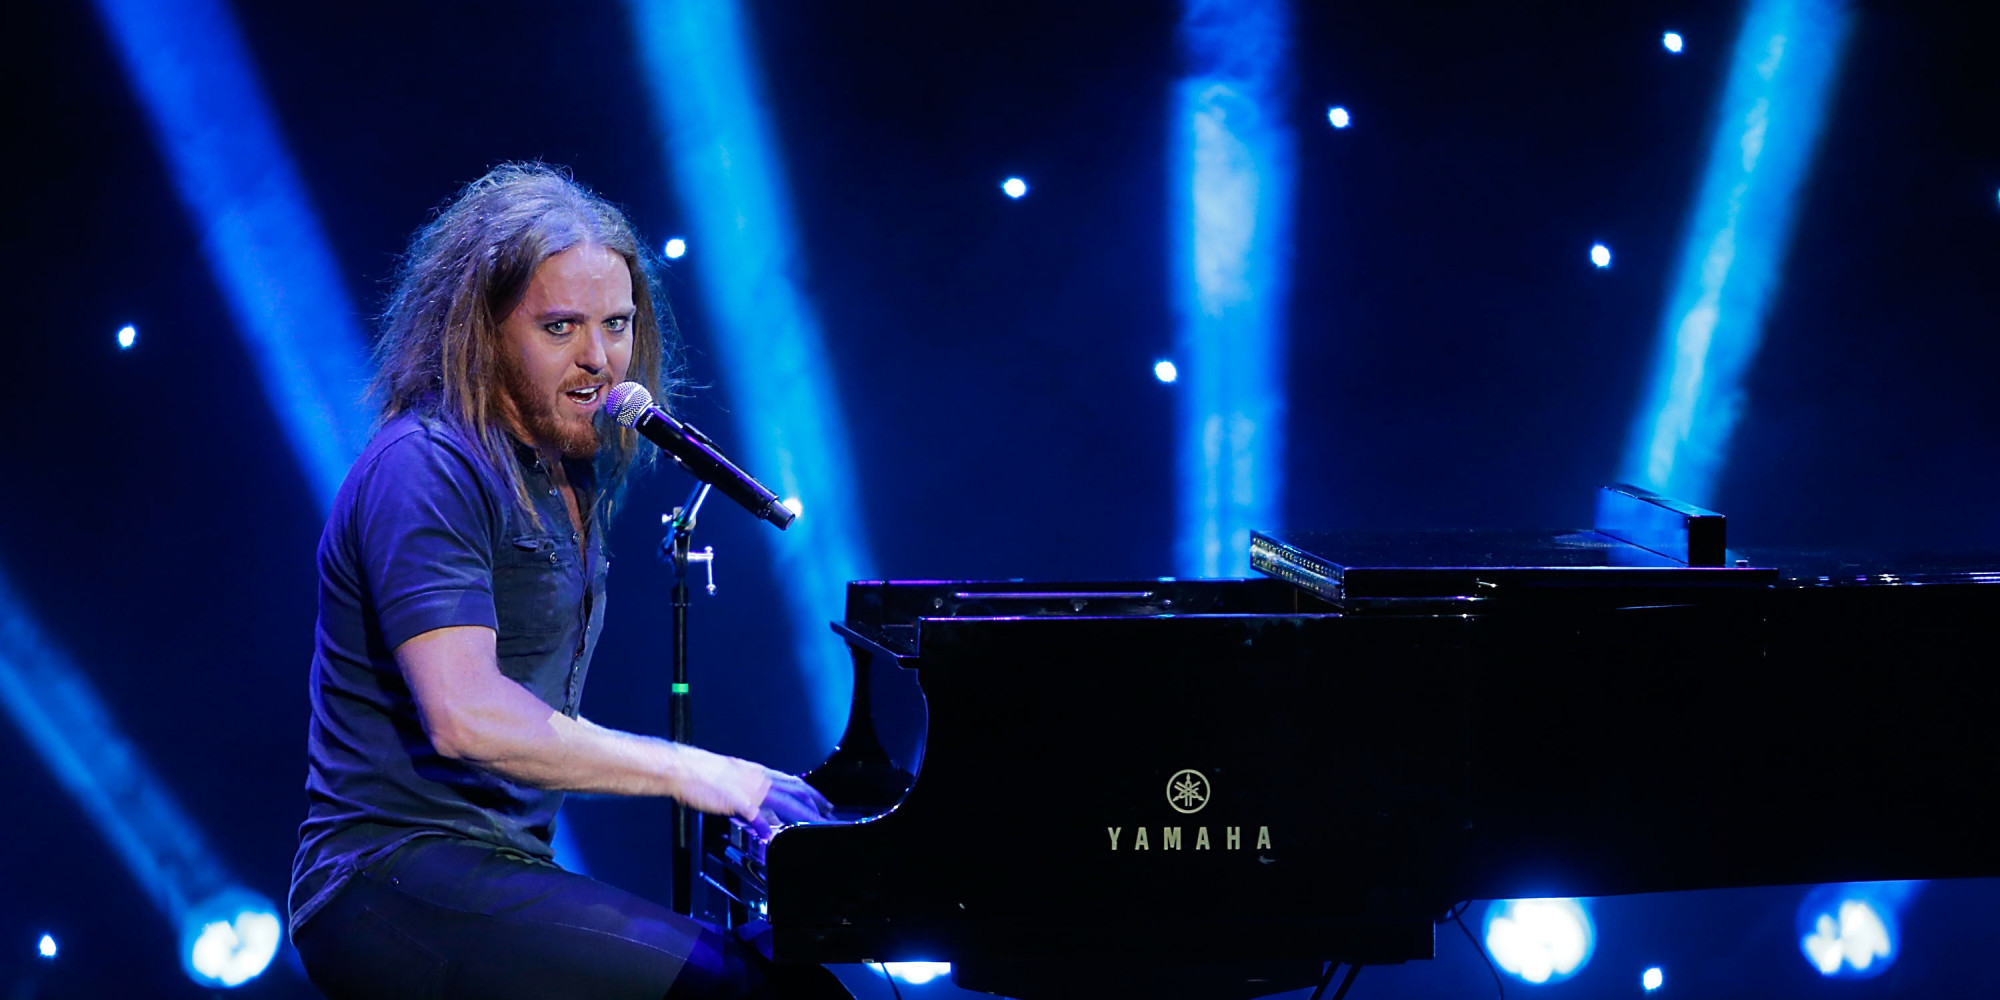 tim minchin and the heritage orchestratim minchin prejudice, tim minchin so long, tim minchin rus sub, tim minchin storm, tim minchin prejudice перевод, tim minchin thank you god, tim minchin wife, tim minchin lyrics, tim minchin chords, tim minchin so long chords, tim minchin dark side, tim minchin - the fence, tim minchin jesus christ superstar, tim minchin inflatable you, tim minchin and the heritage orchestra, tim minchin concerts 2017, tim minchin only a ginger, tim minchin prejudice lyrics, tim minchin canvas bags, tim minchin перевод